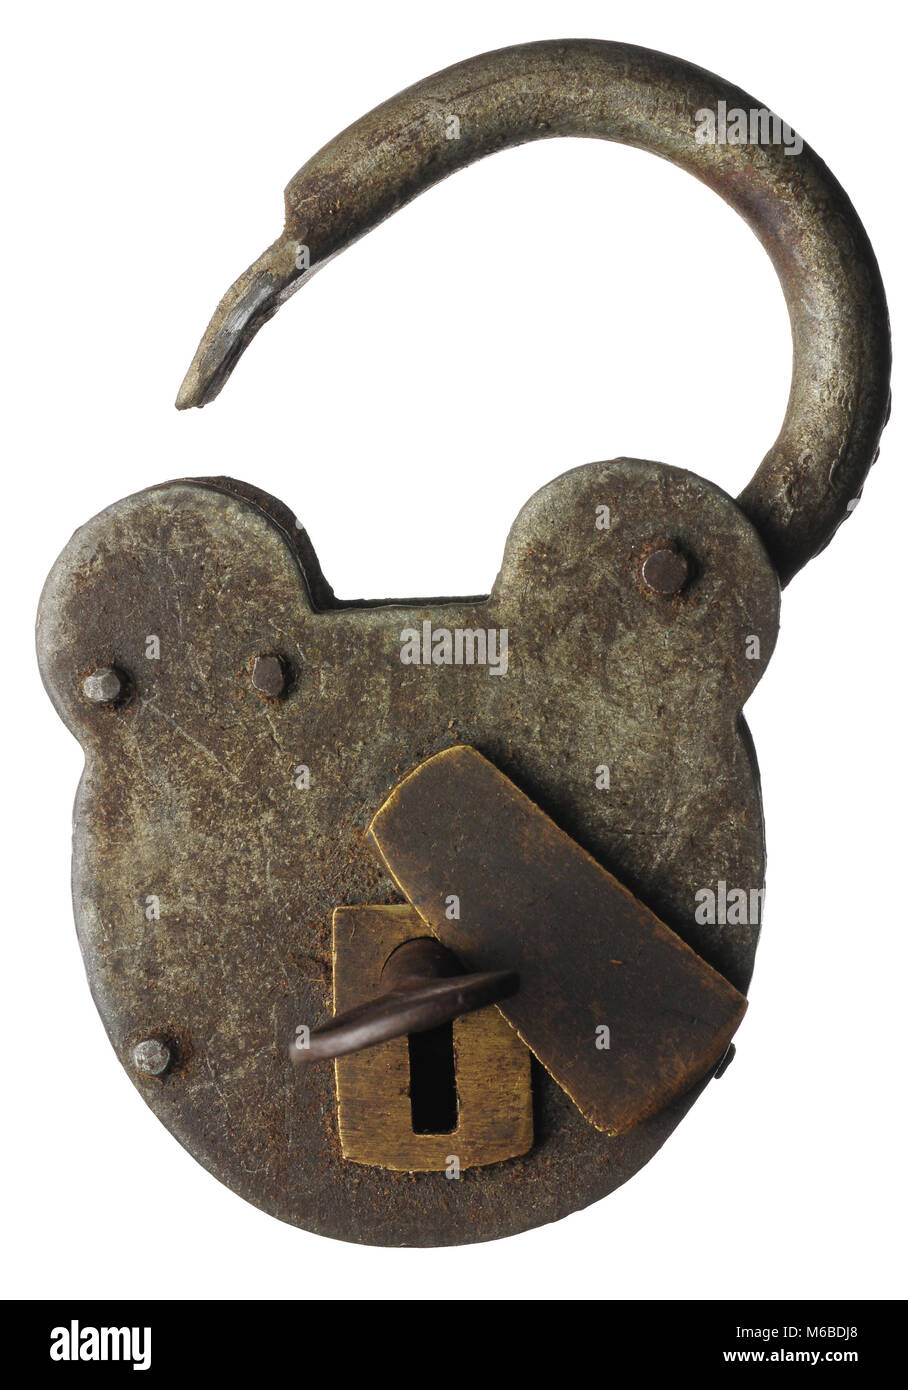 An antique padlock opened with a key - Stock Image